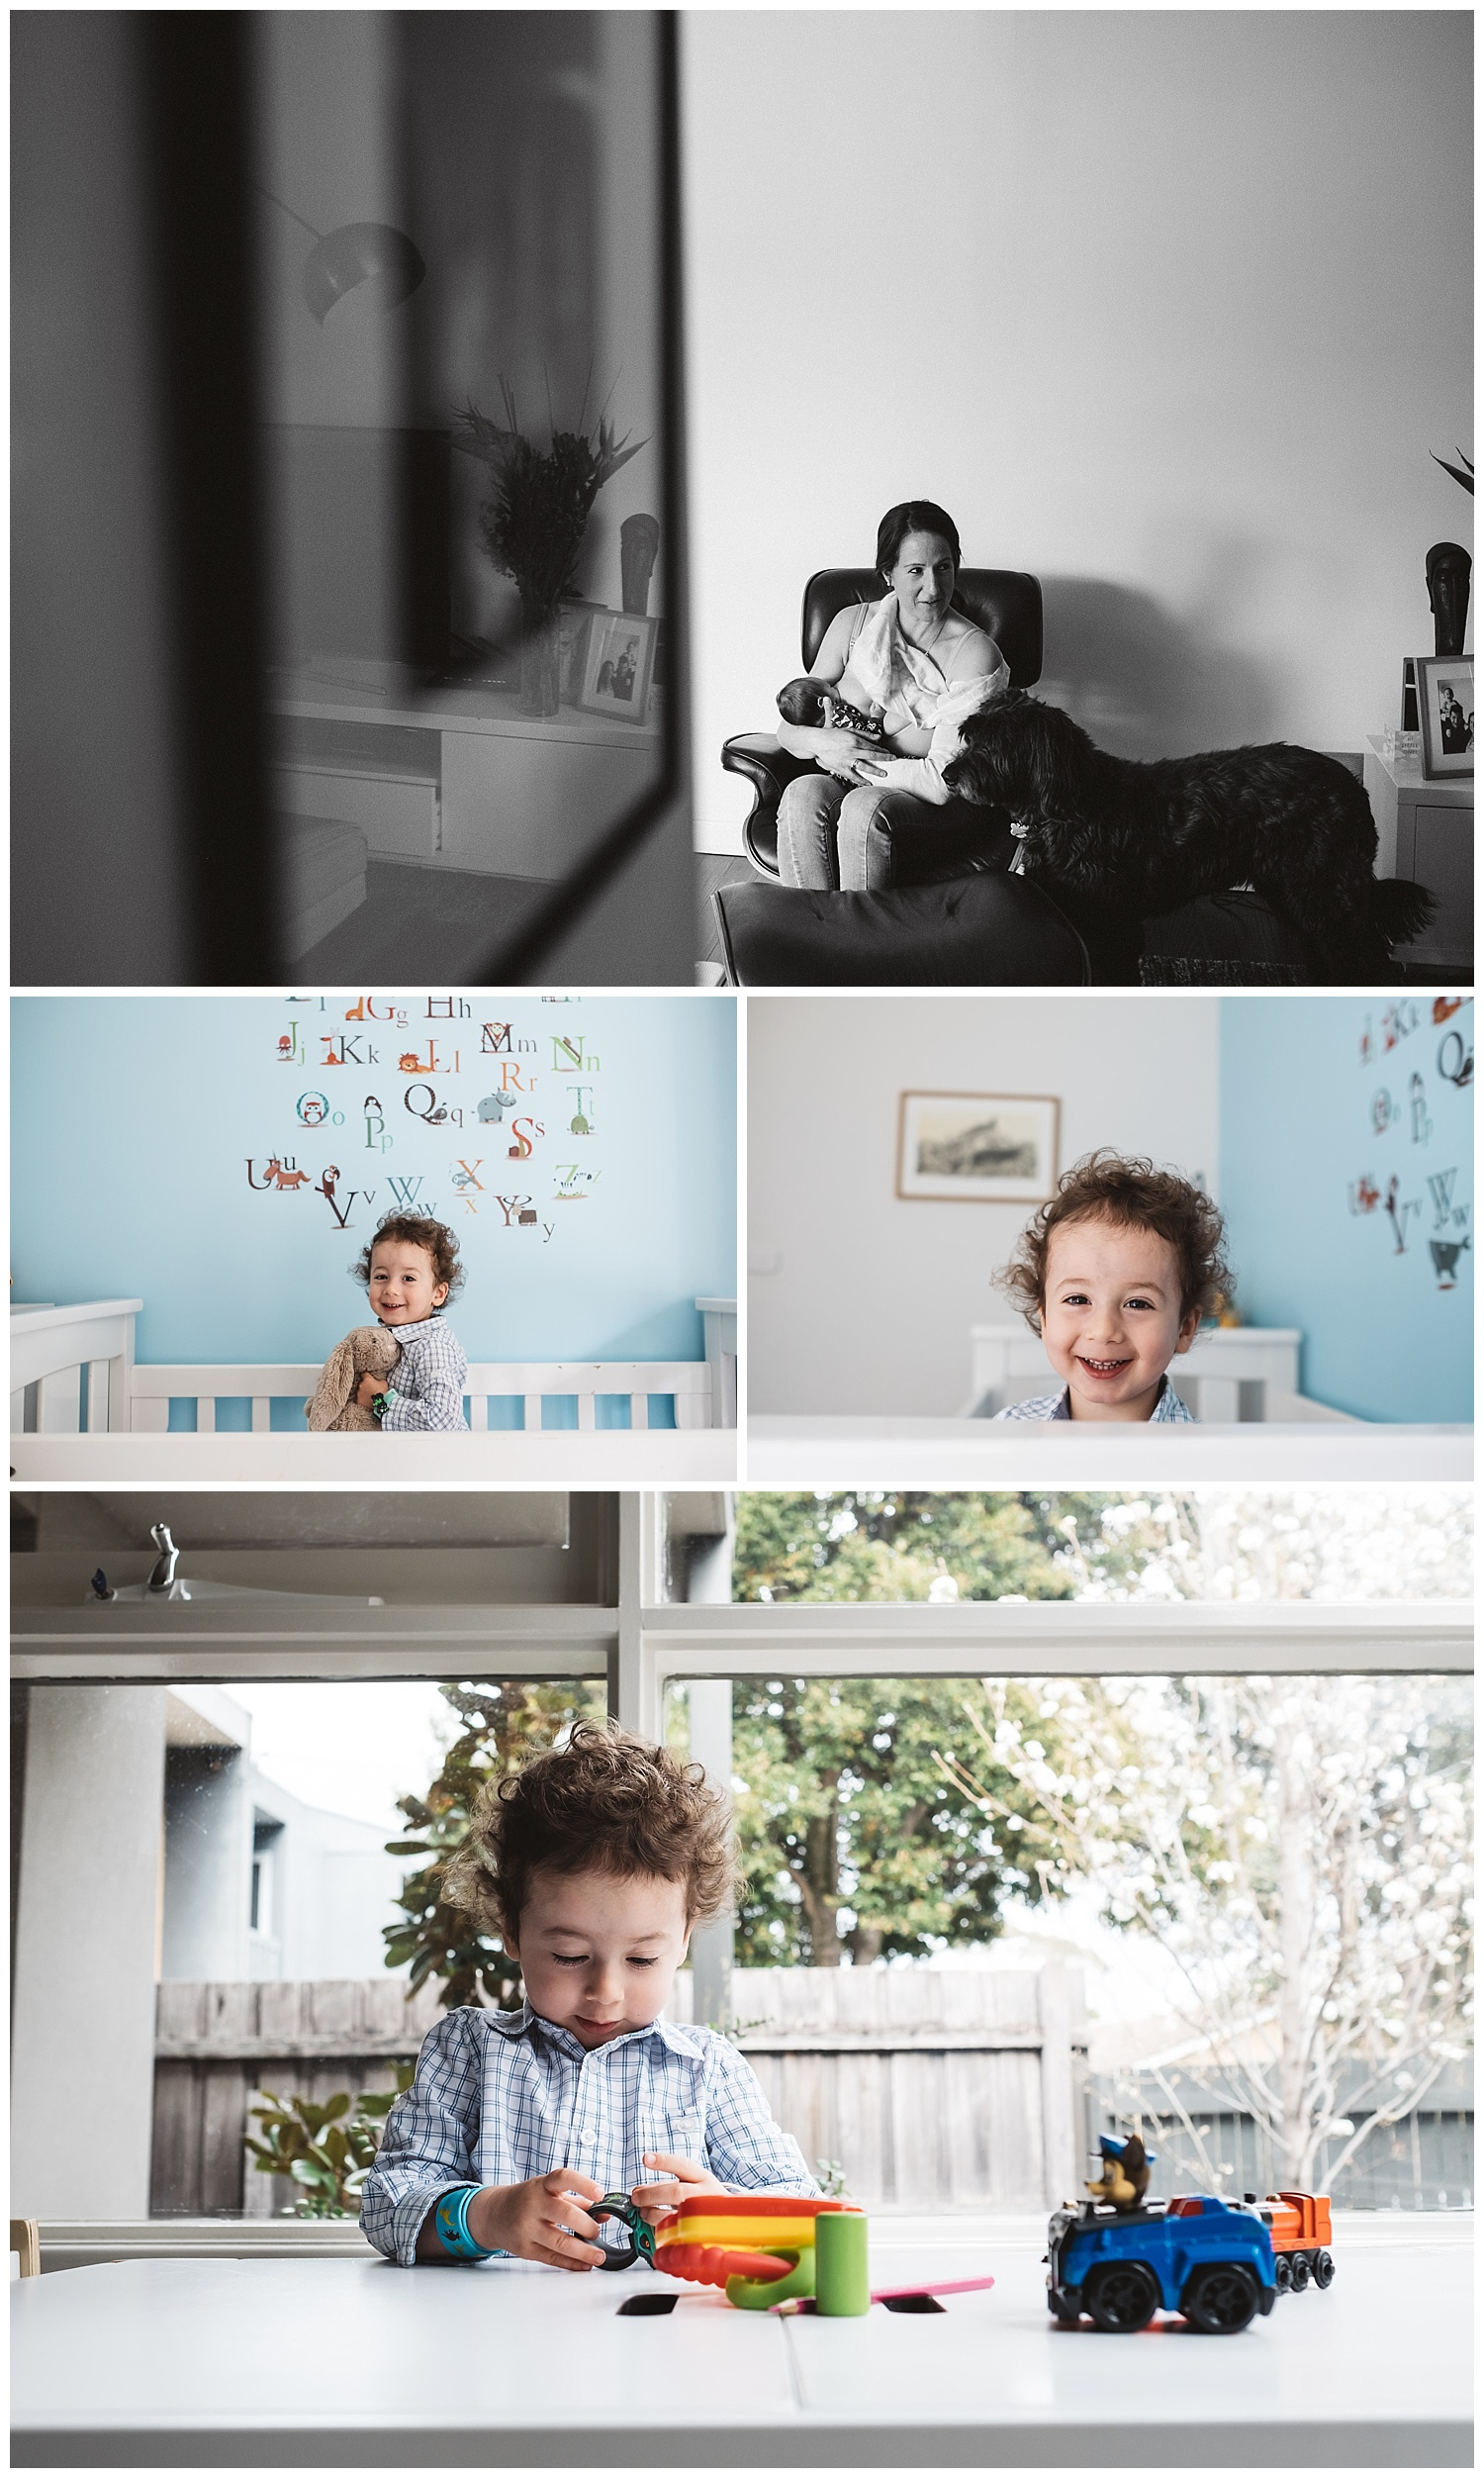 family portraits in mentone and Prahran, lifestyle family photography with natural light